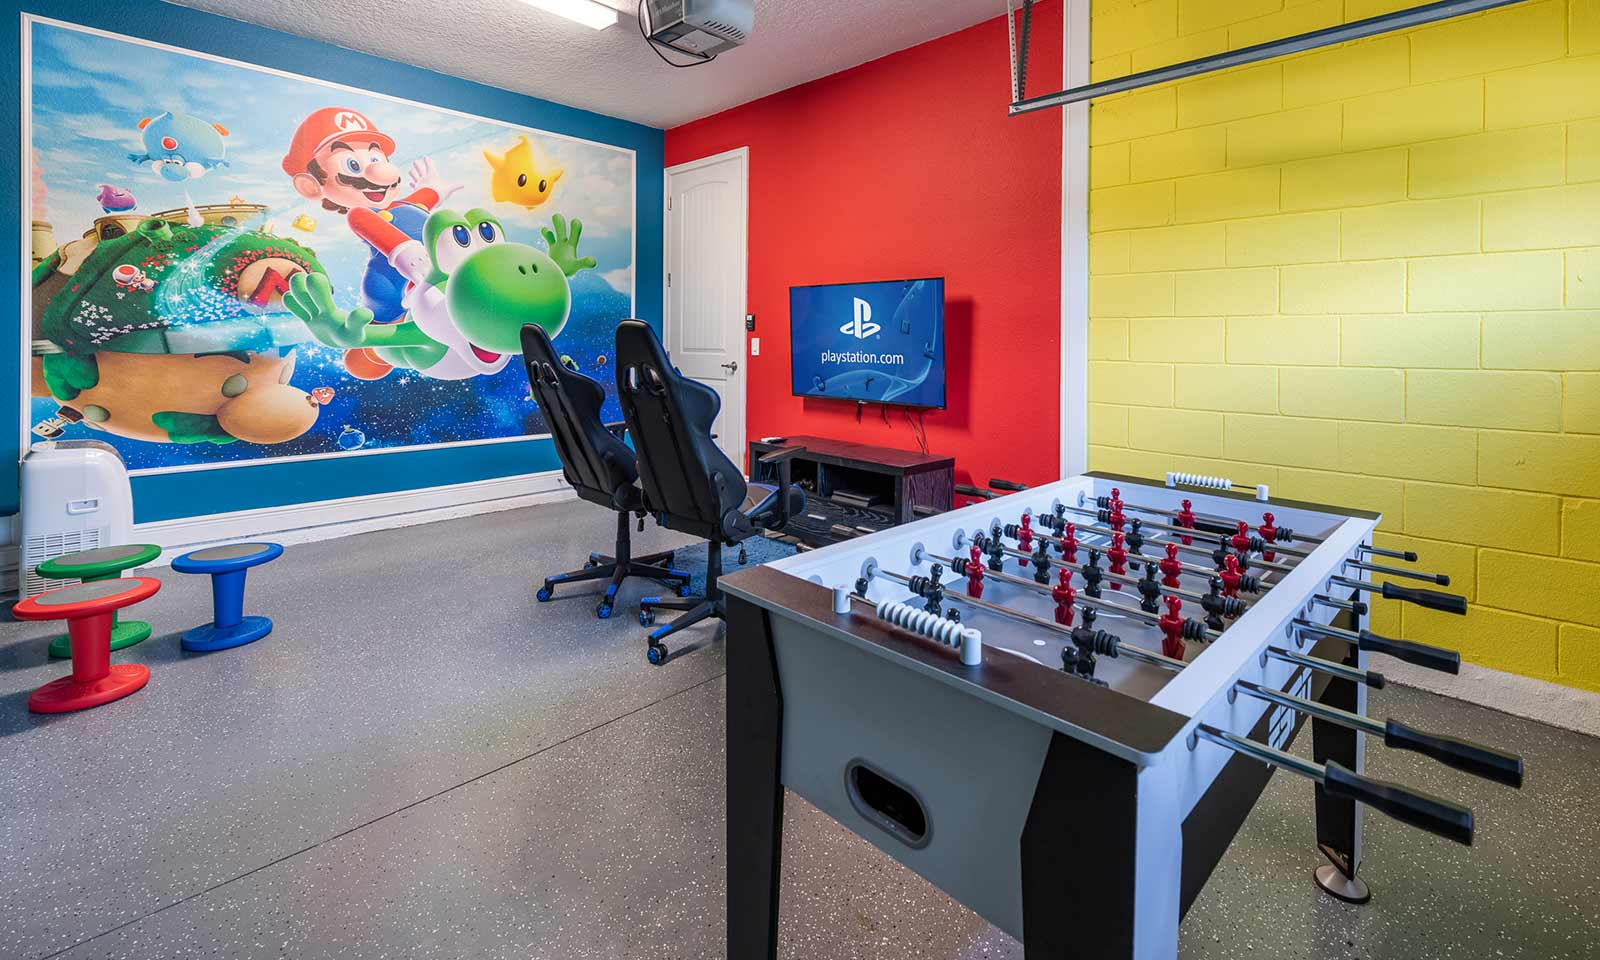 [amenities:game-room:3] Game Room